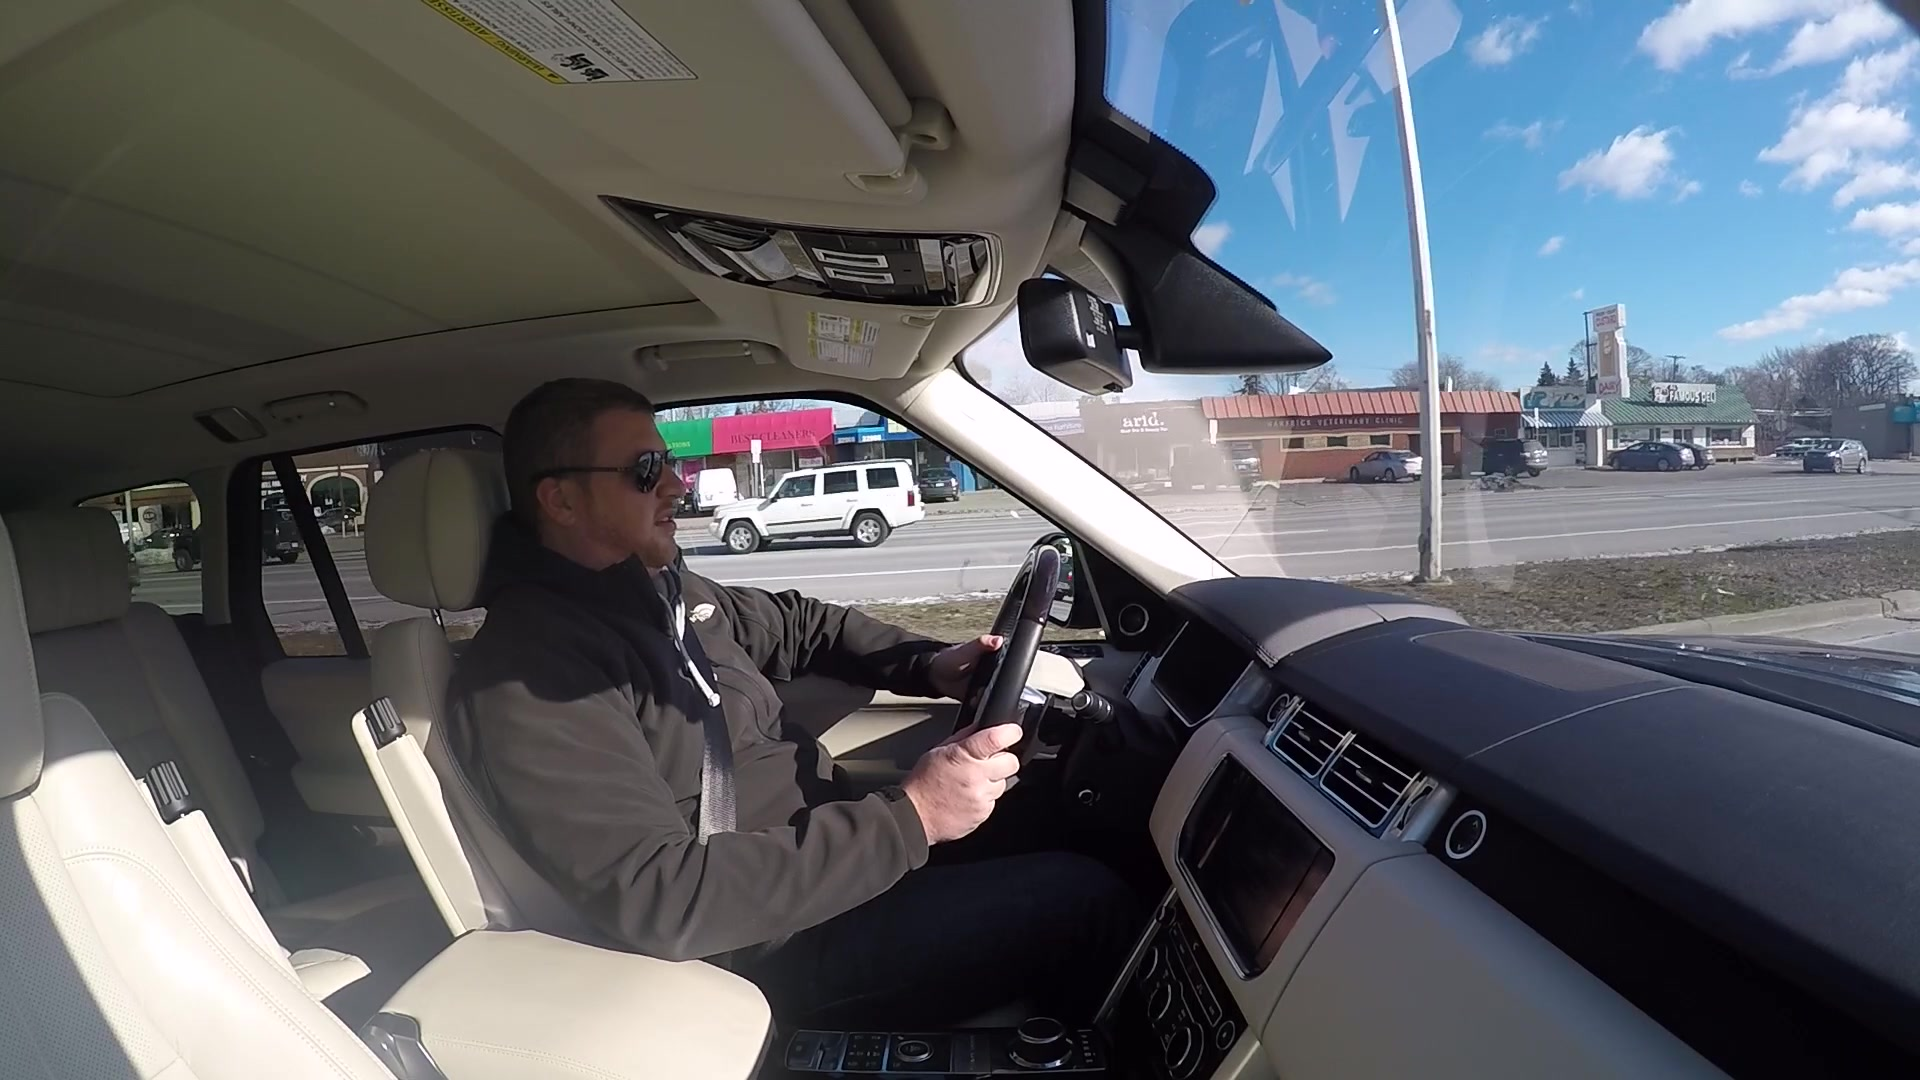 2016 Land Rover Range Rover TDV6 First Impressions | Autoblog Short Cuts